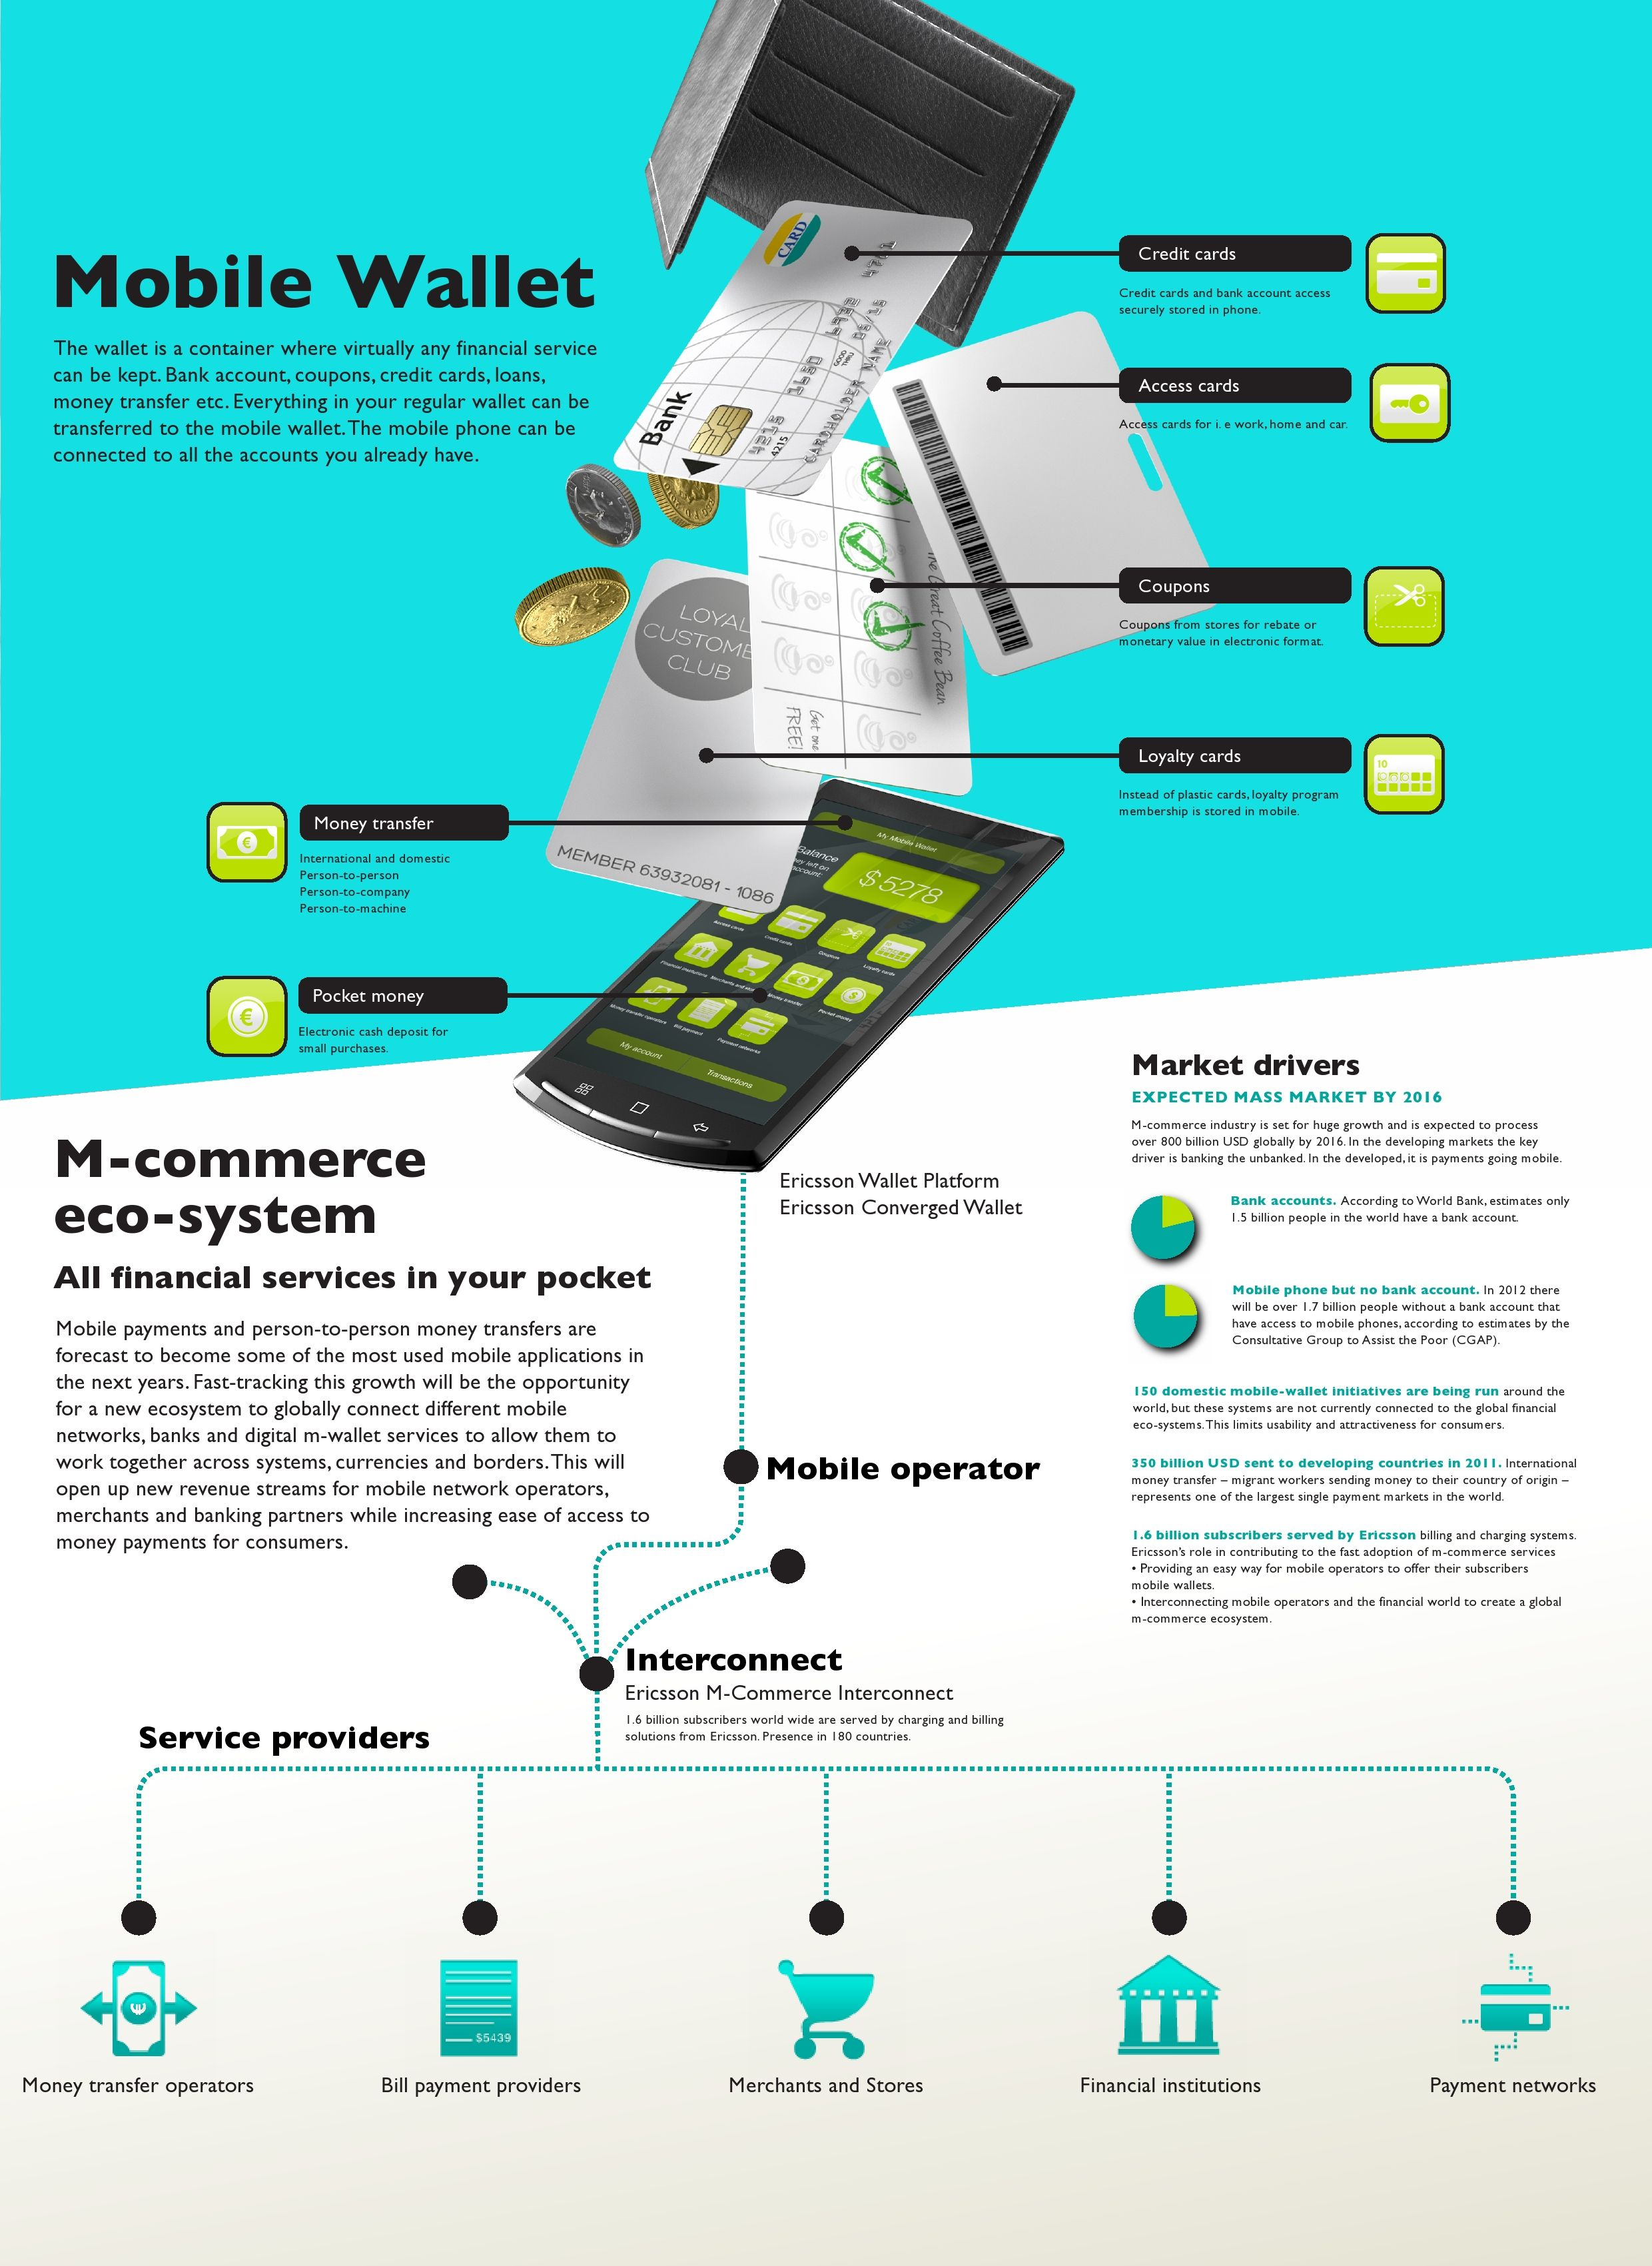 Mobile wallet infographic waiting for it so i can say